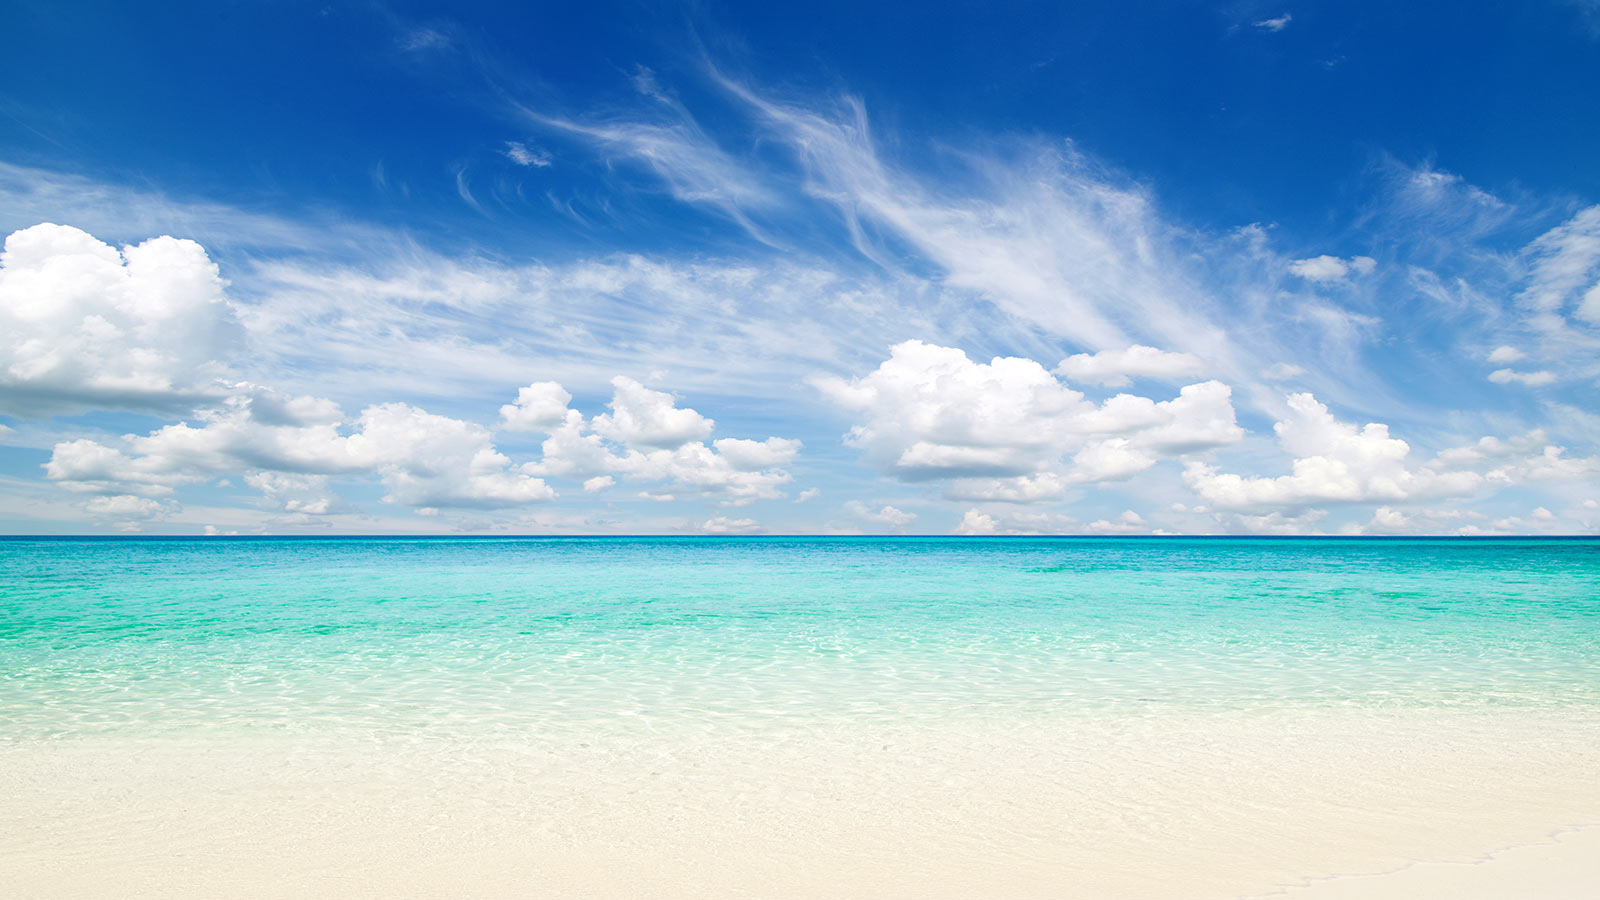 Nice wallpapers Beach 1600x900px